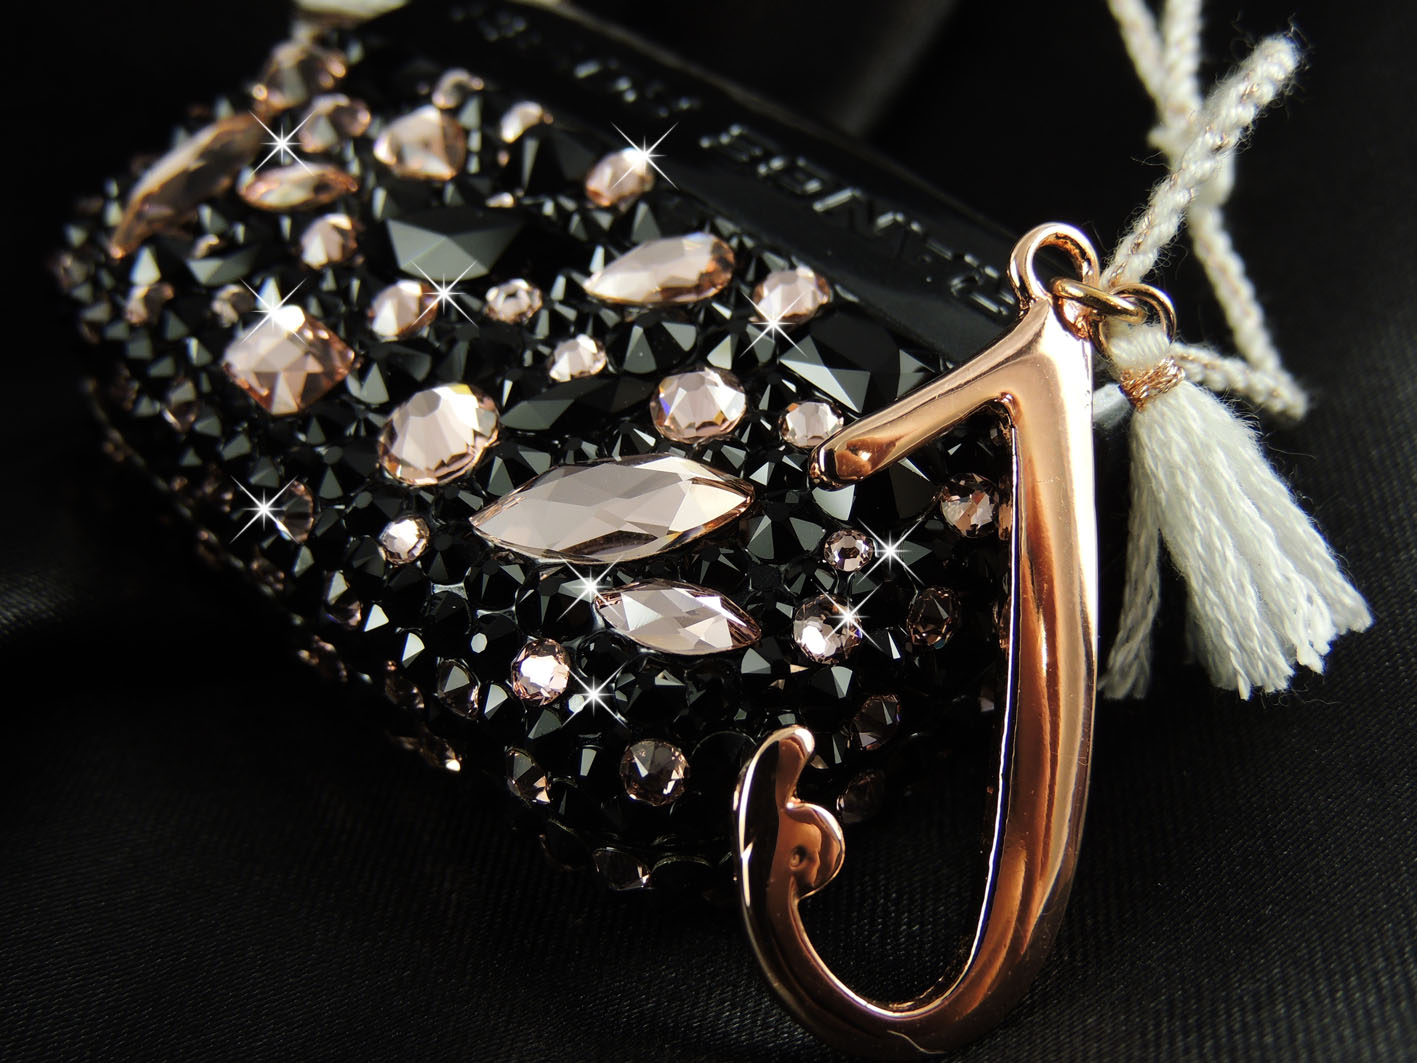 Rose gold and black crystal Range Rover Key Case. Crystals by Swarovski®